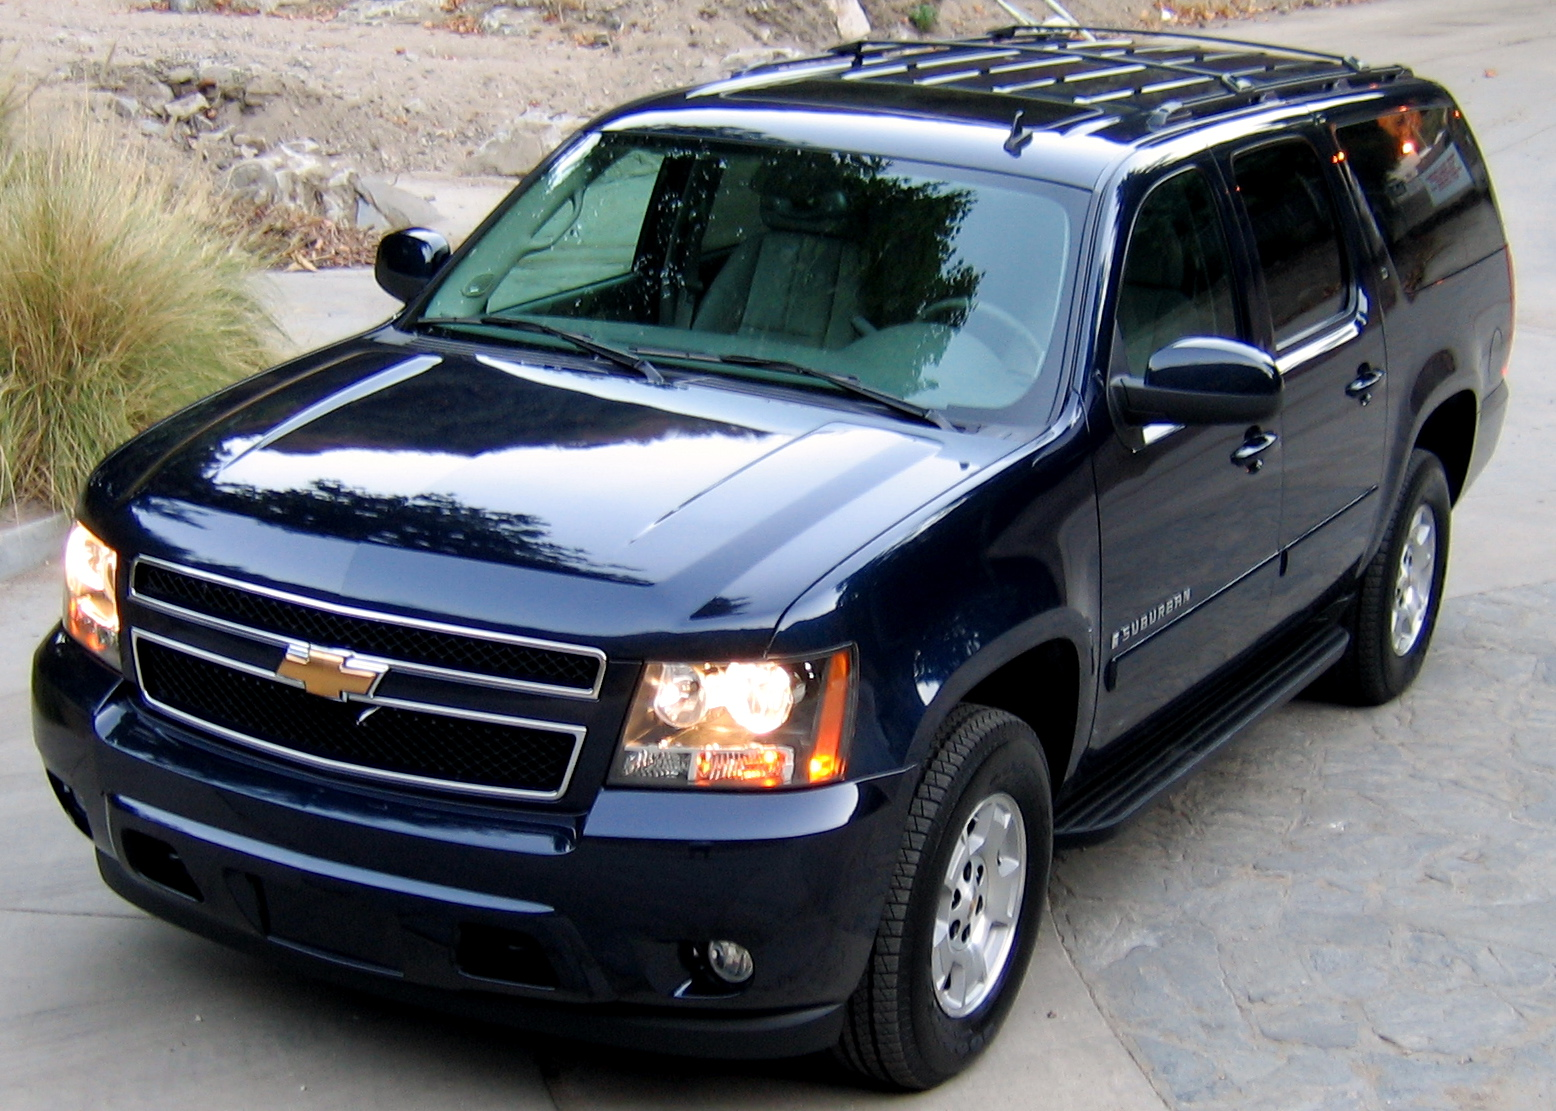 chevy suburban bpassenger car photos chevy suburban bpassenger car videos. Black Bedroom Furniture Sets. Home Design Ideas